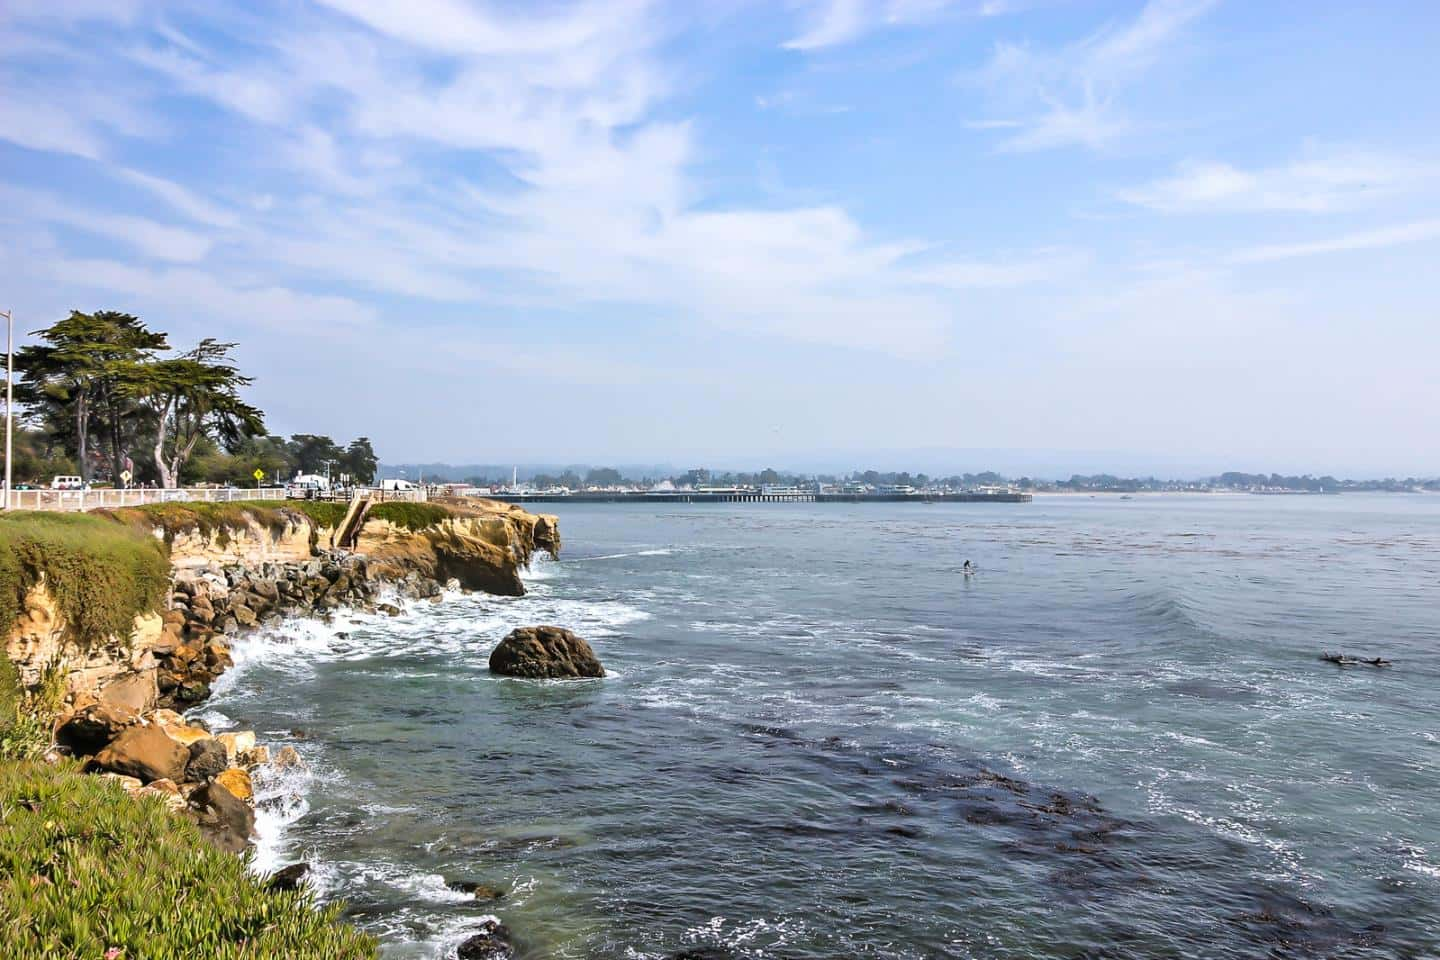 Visiting West Cliff Drive is one of the best things to do in Santa Cruz